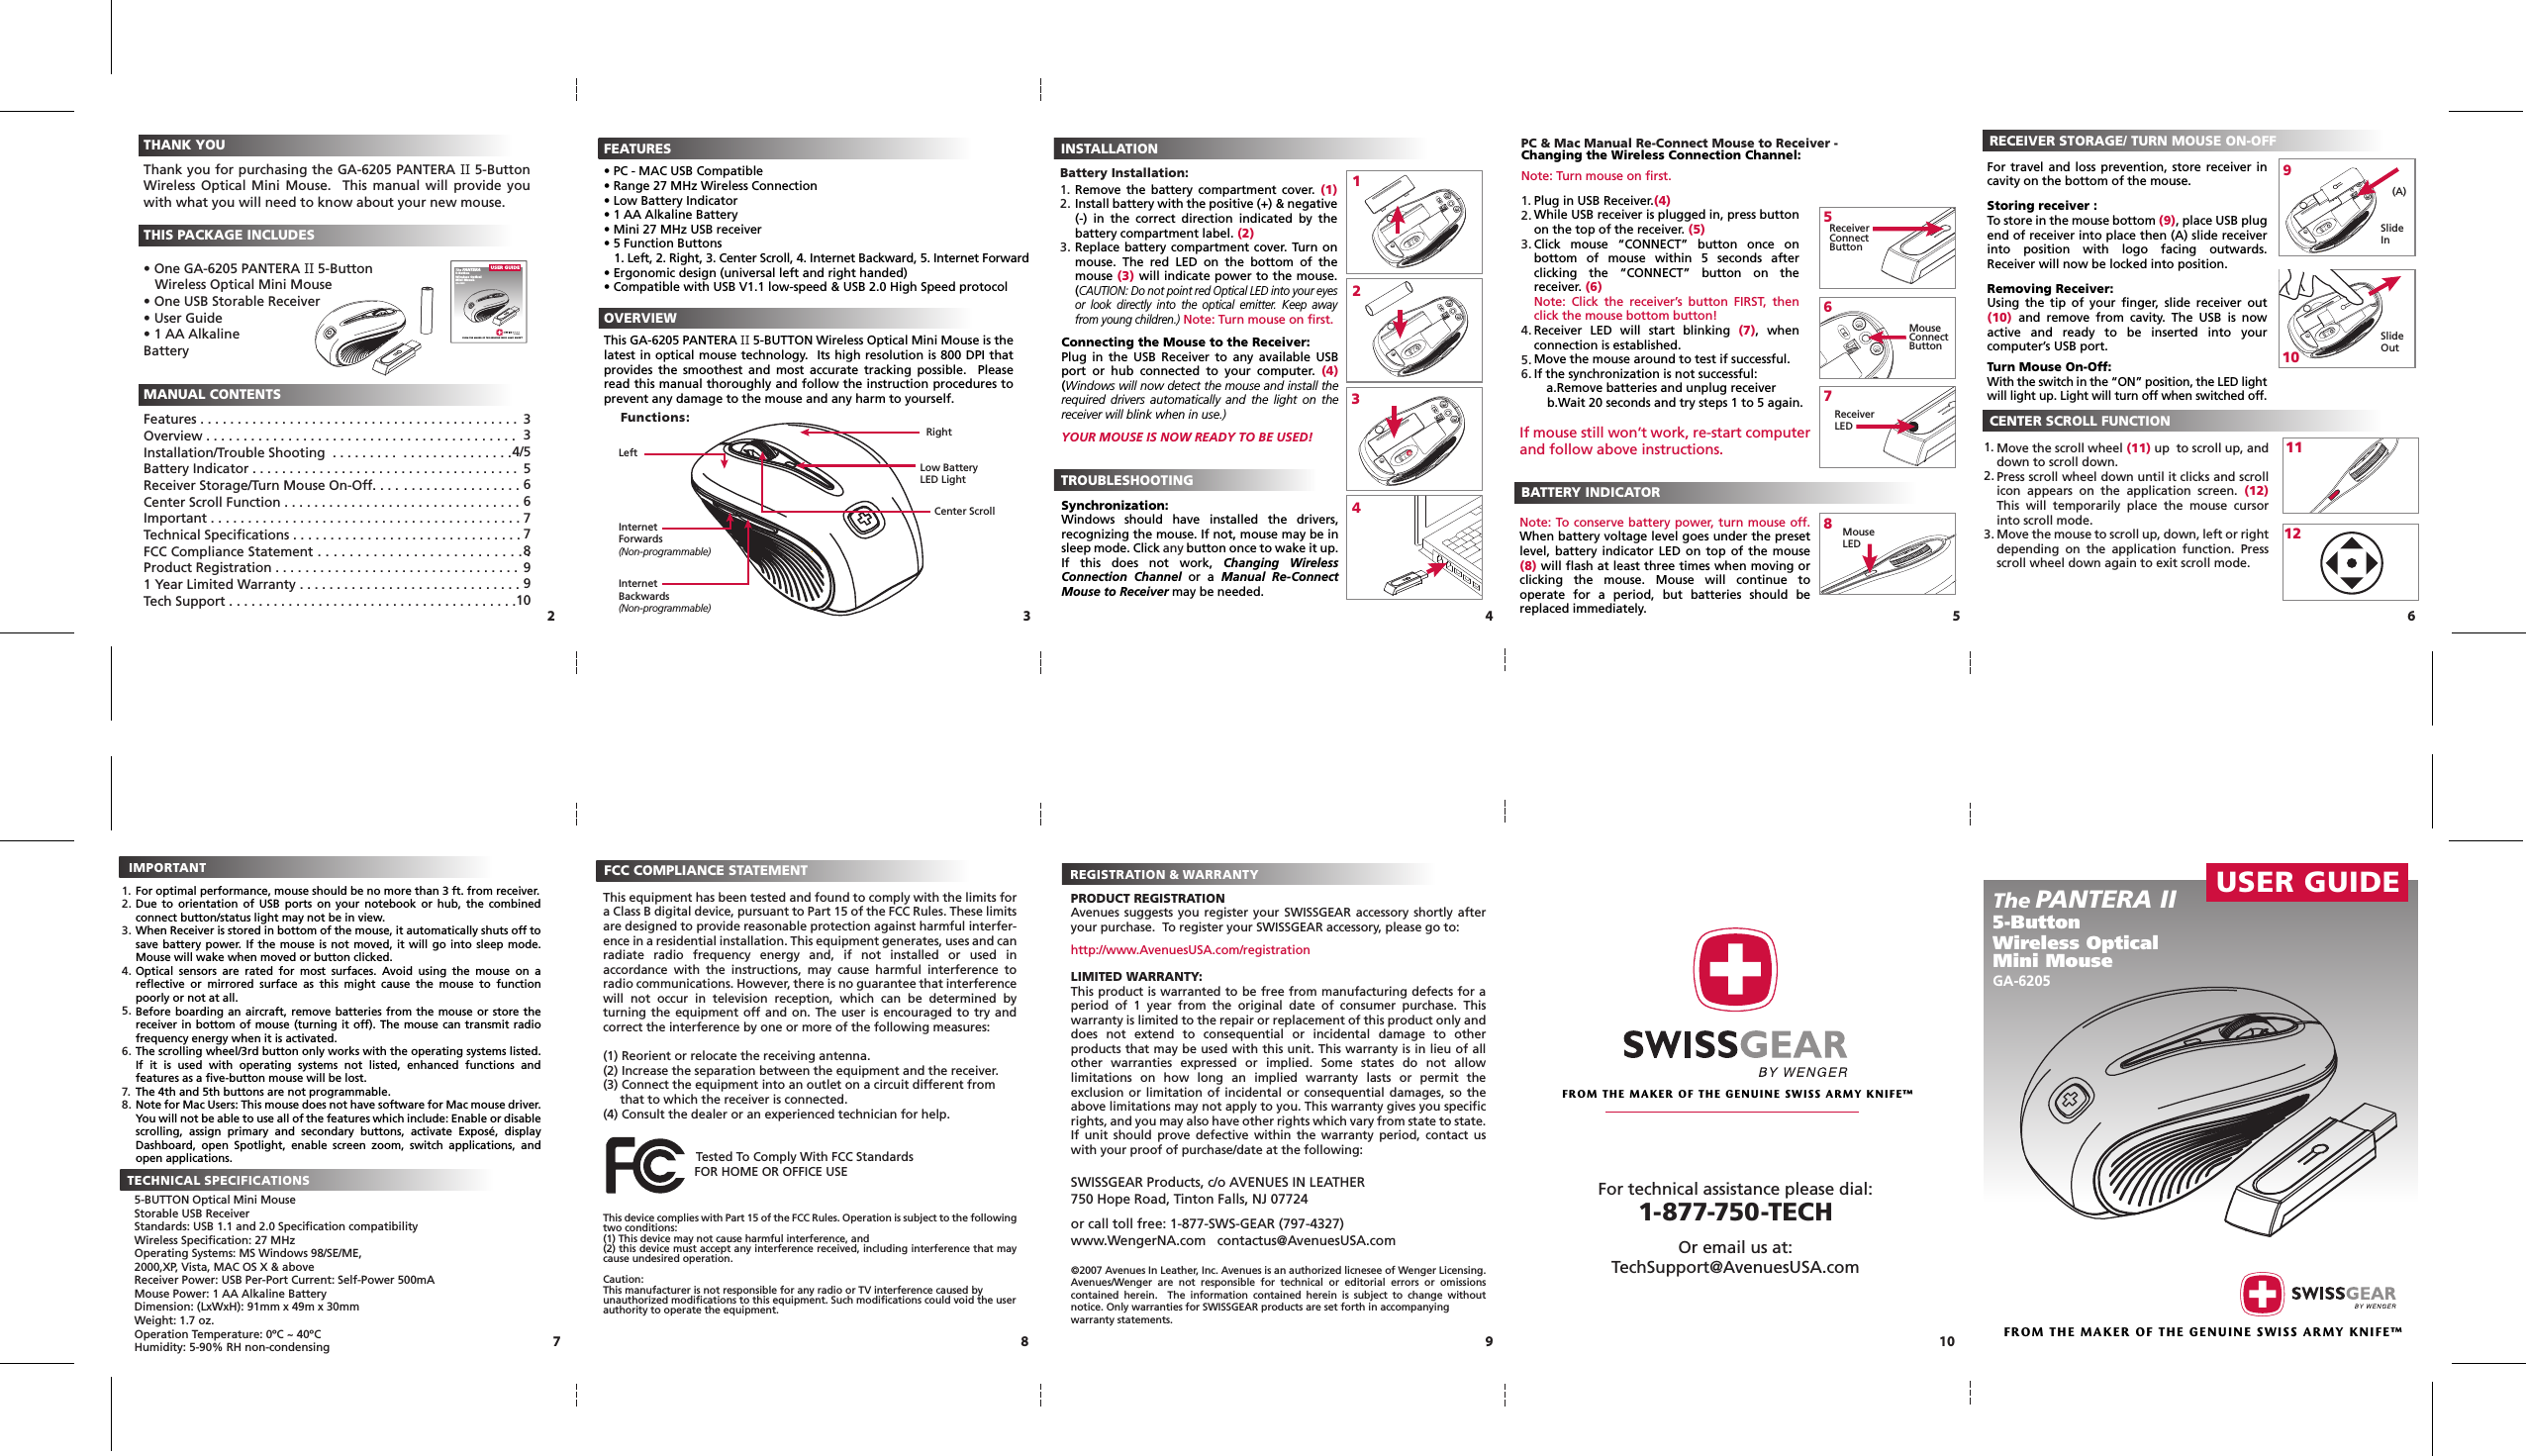 staples wireless optical mouse user manual